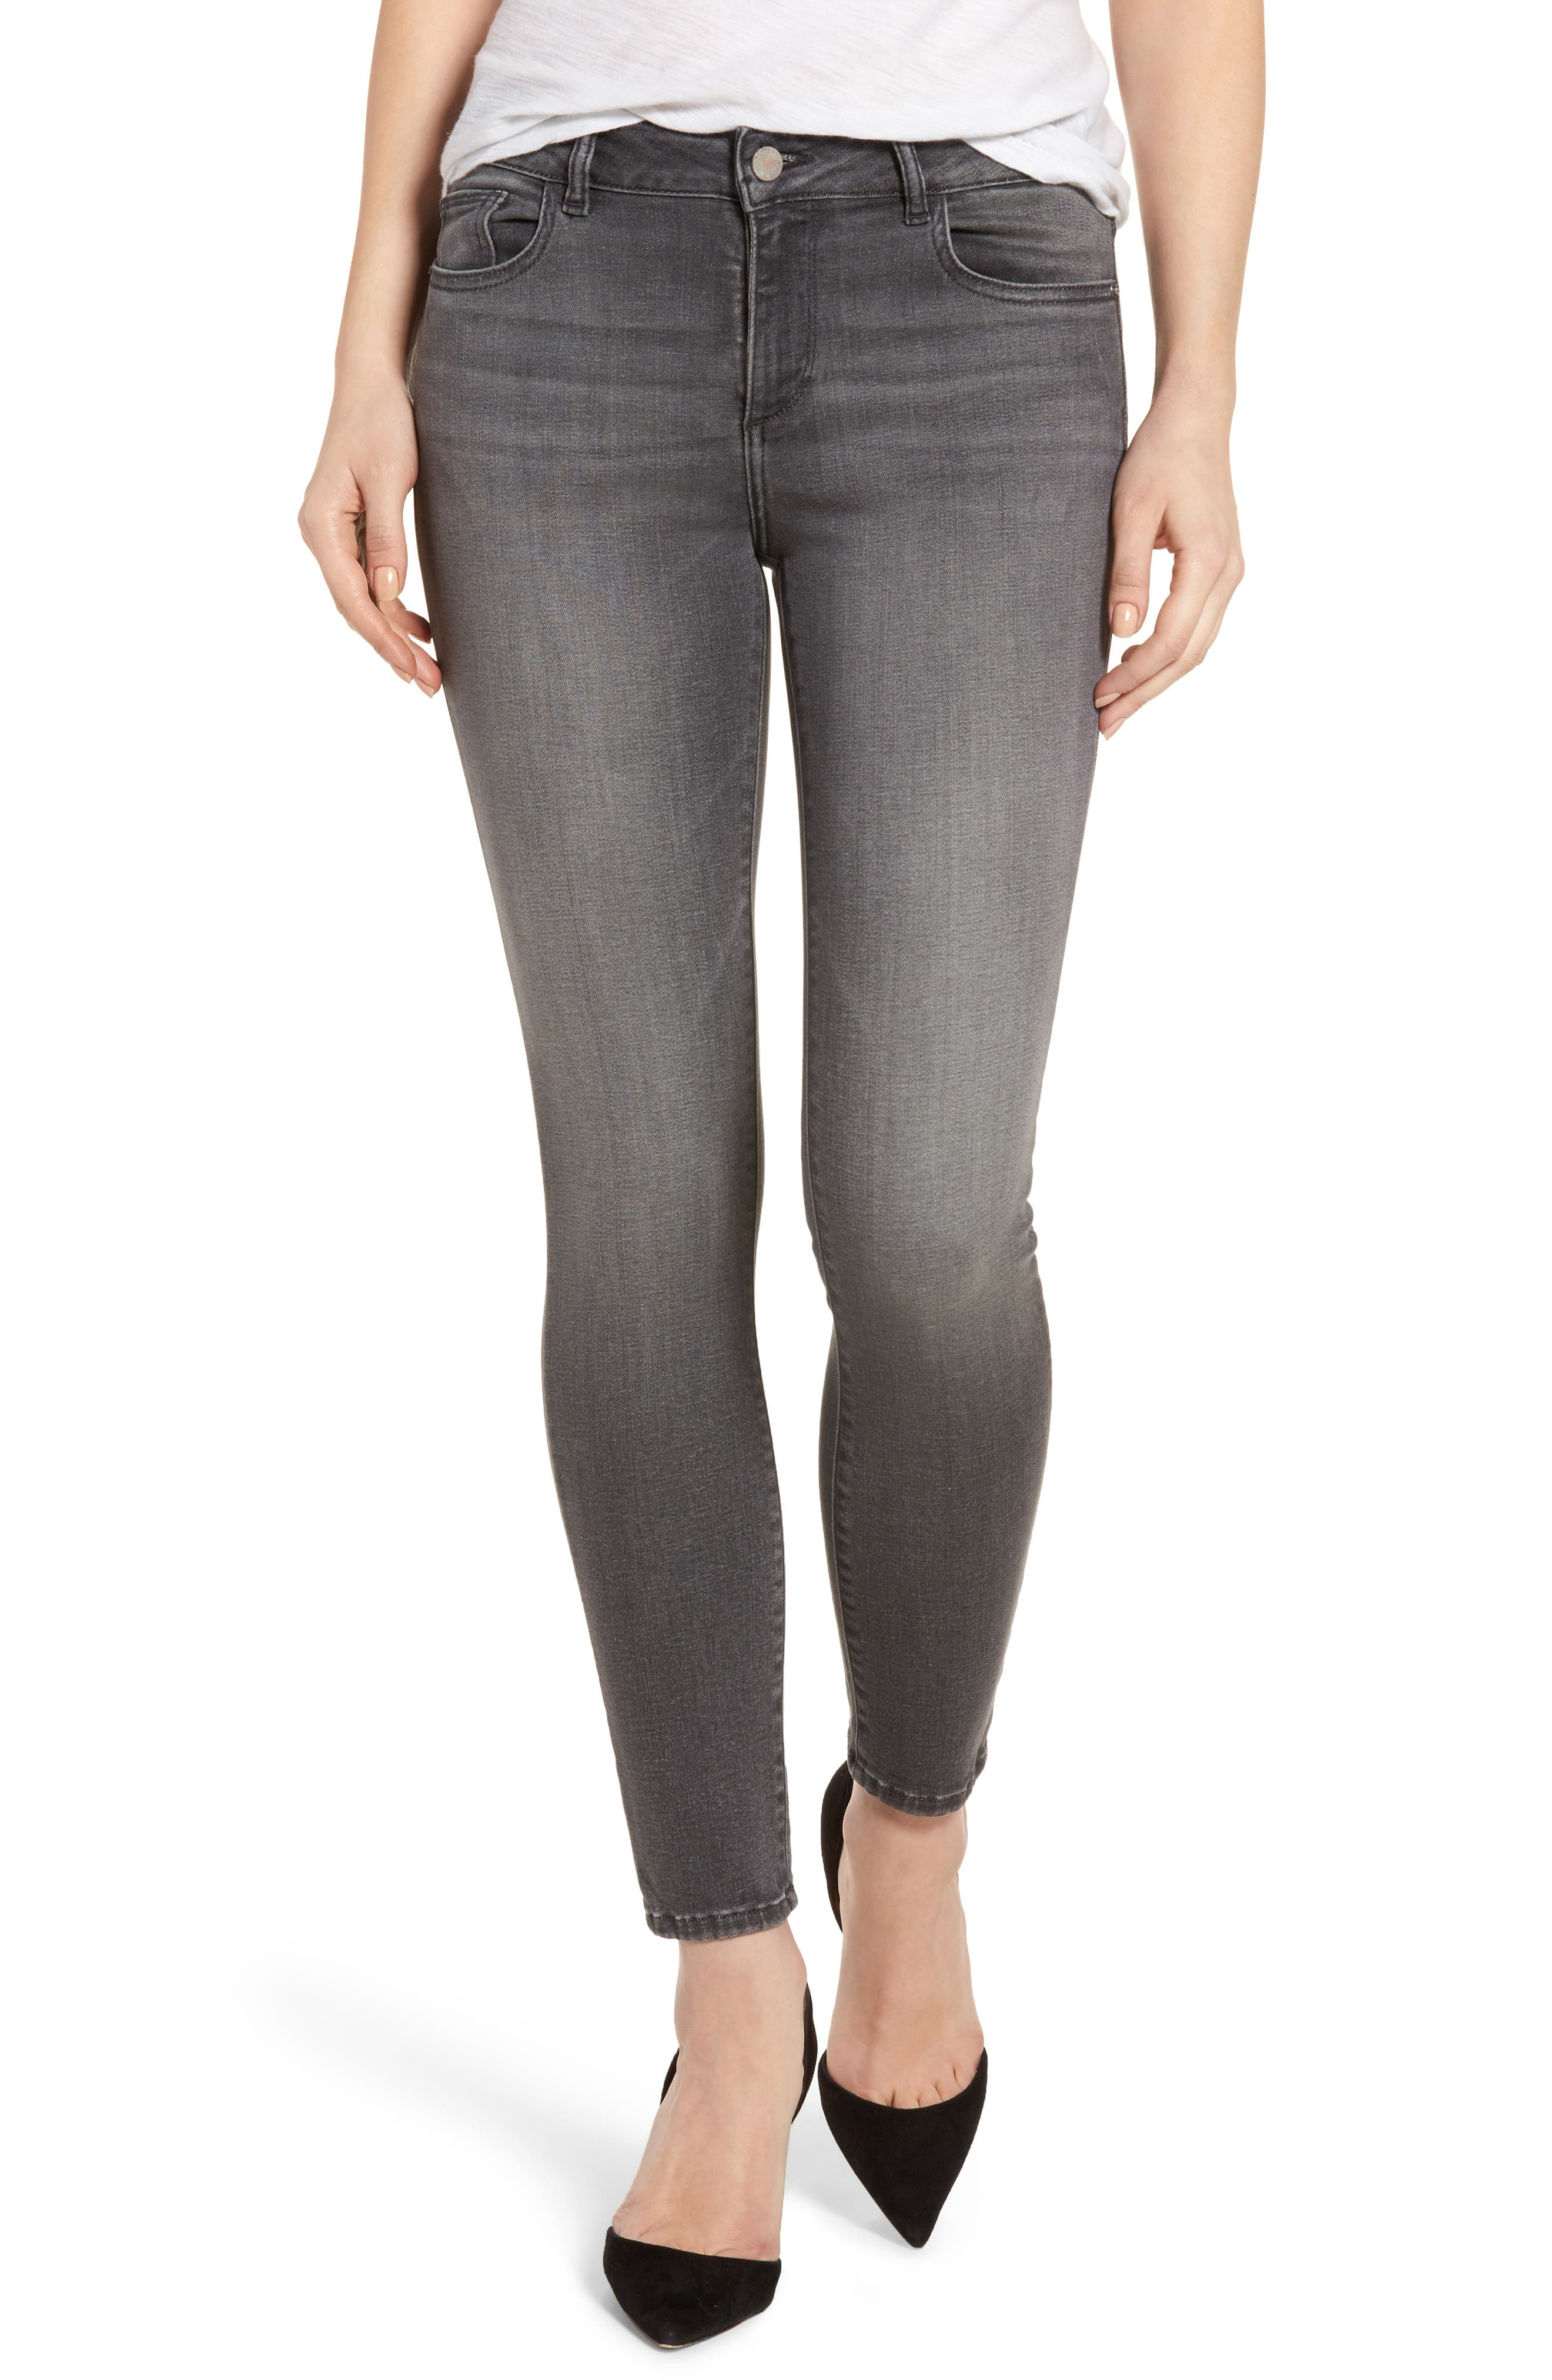 Main Image - DL1961 Margaux Instasculpt Ankle Skinny Jeans (Drizzle)